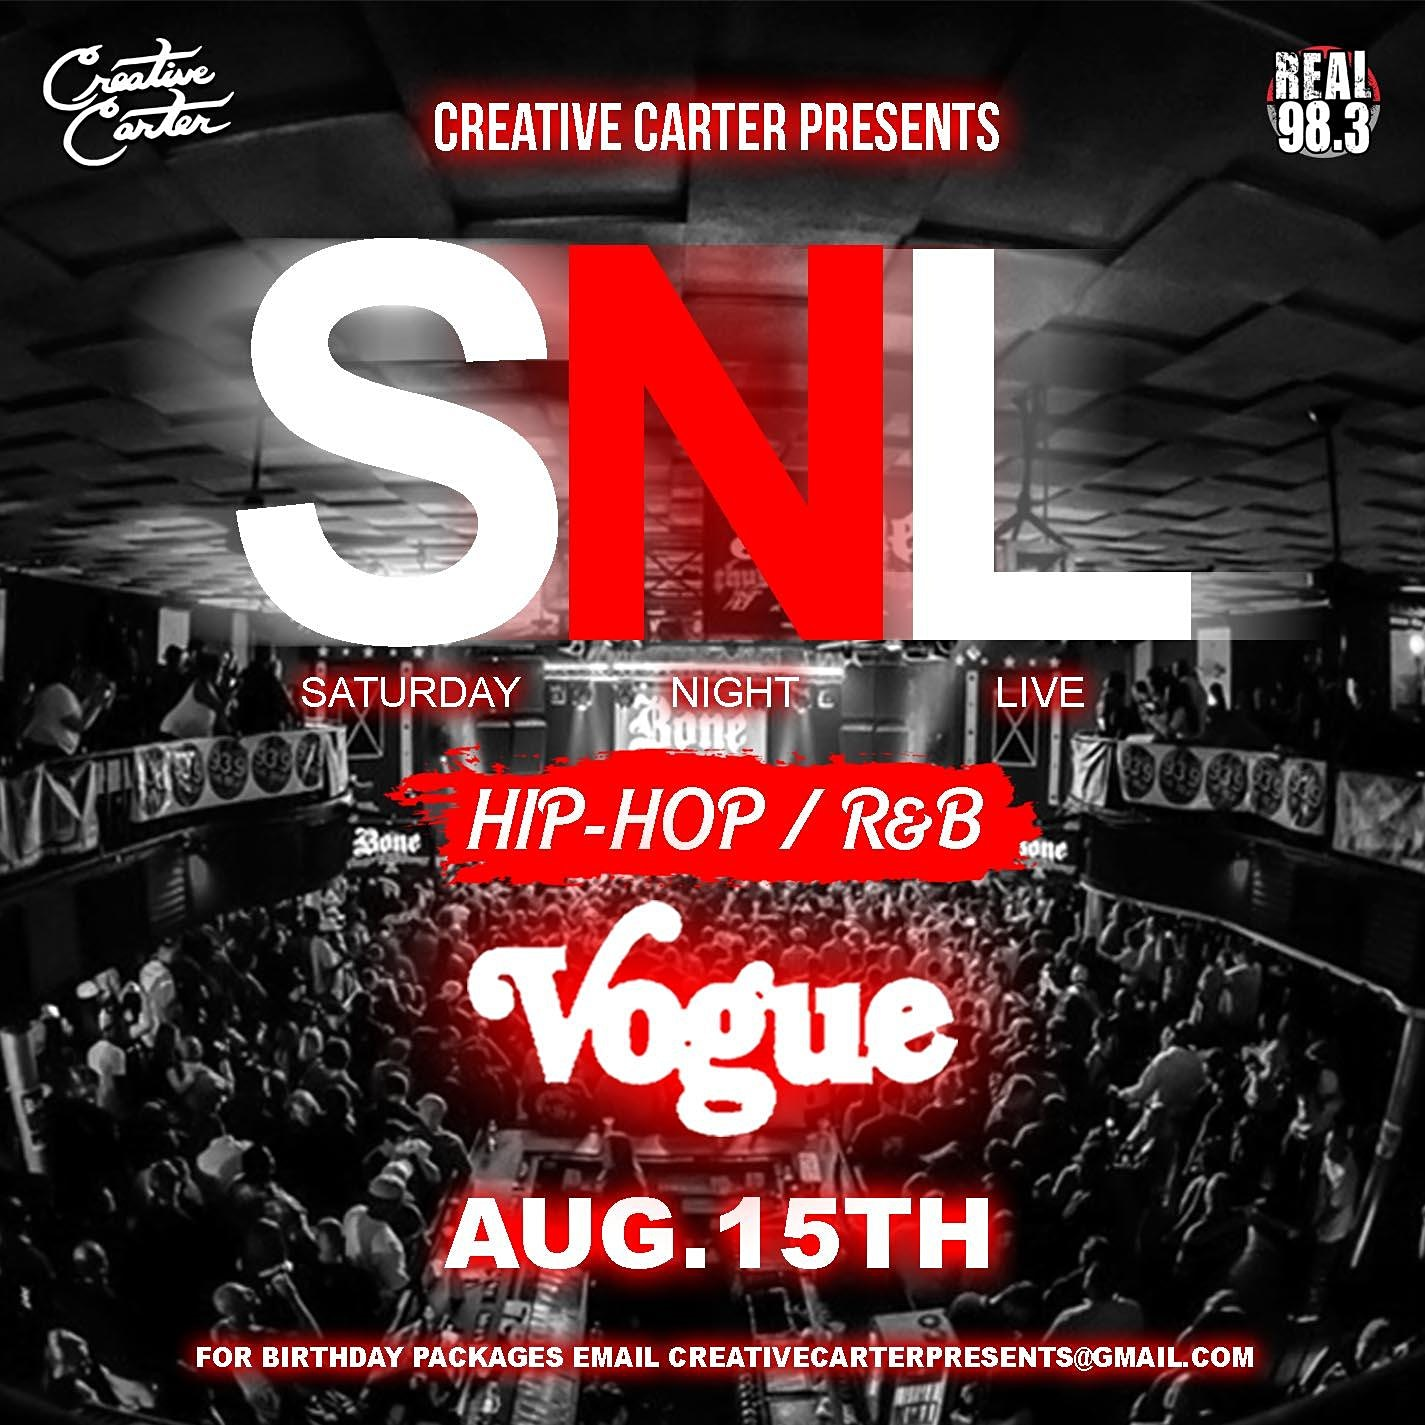 Saturday Night Live at The Vogue